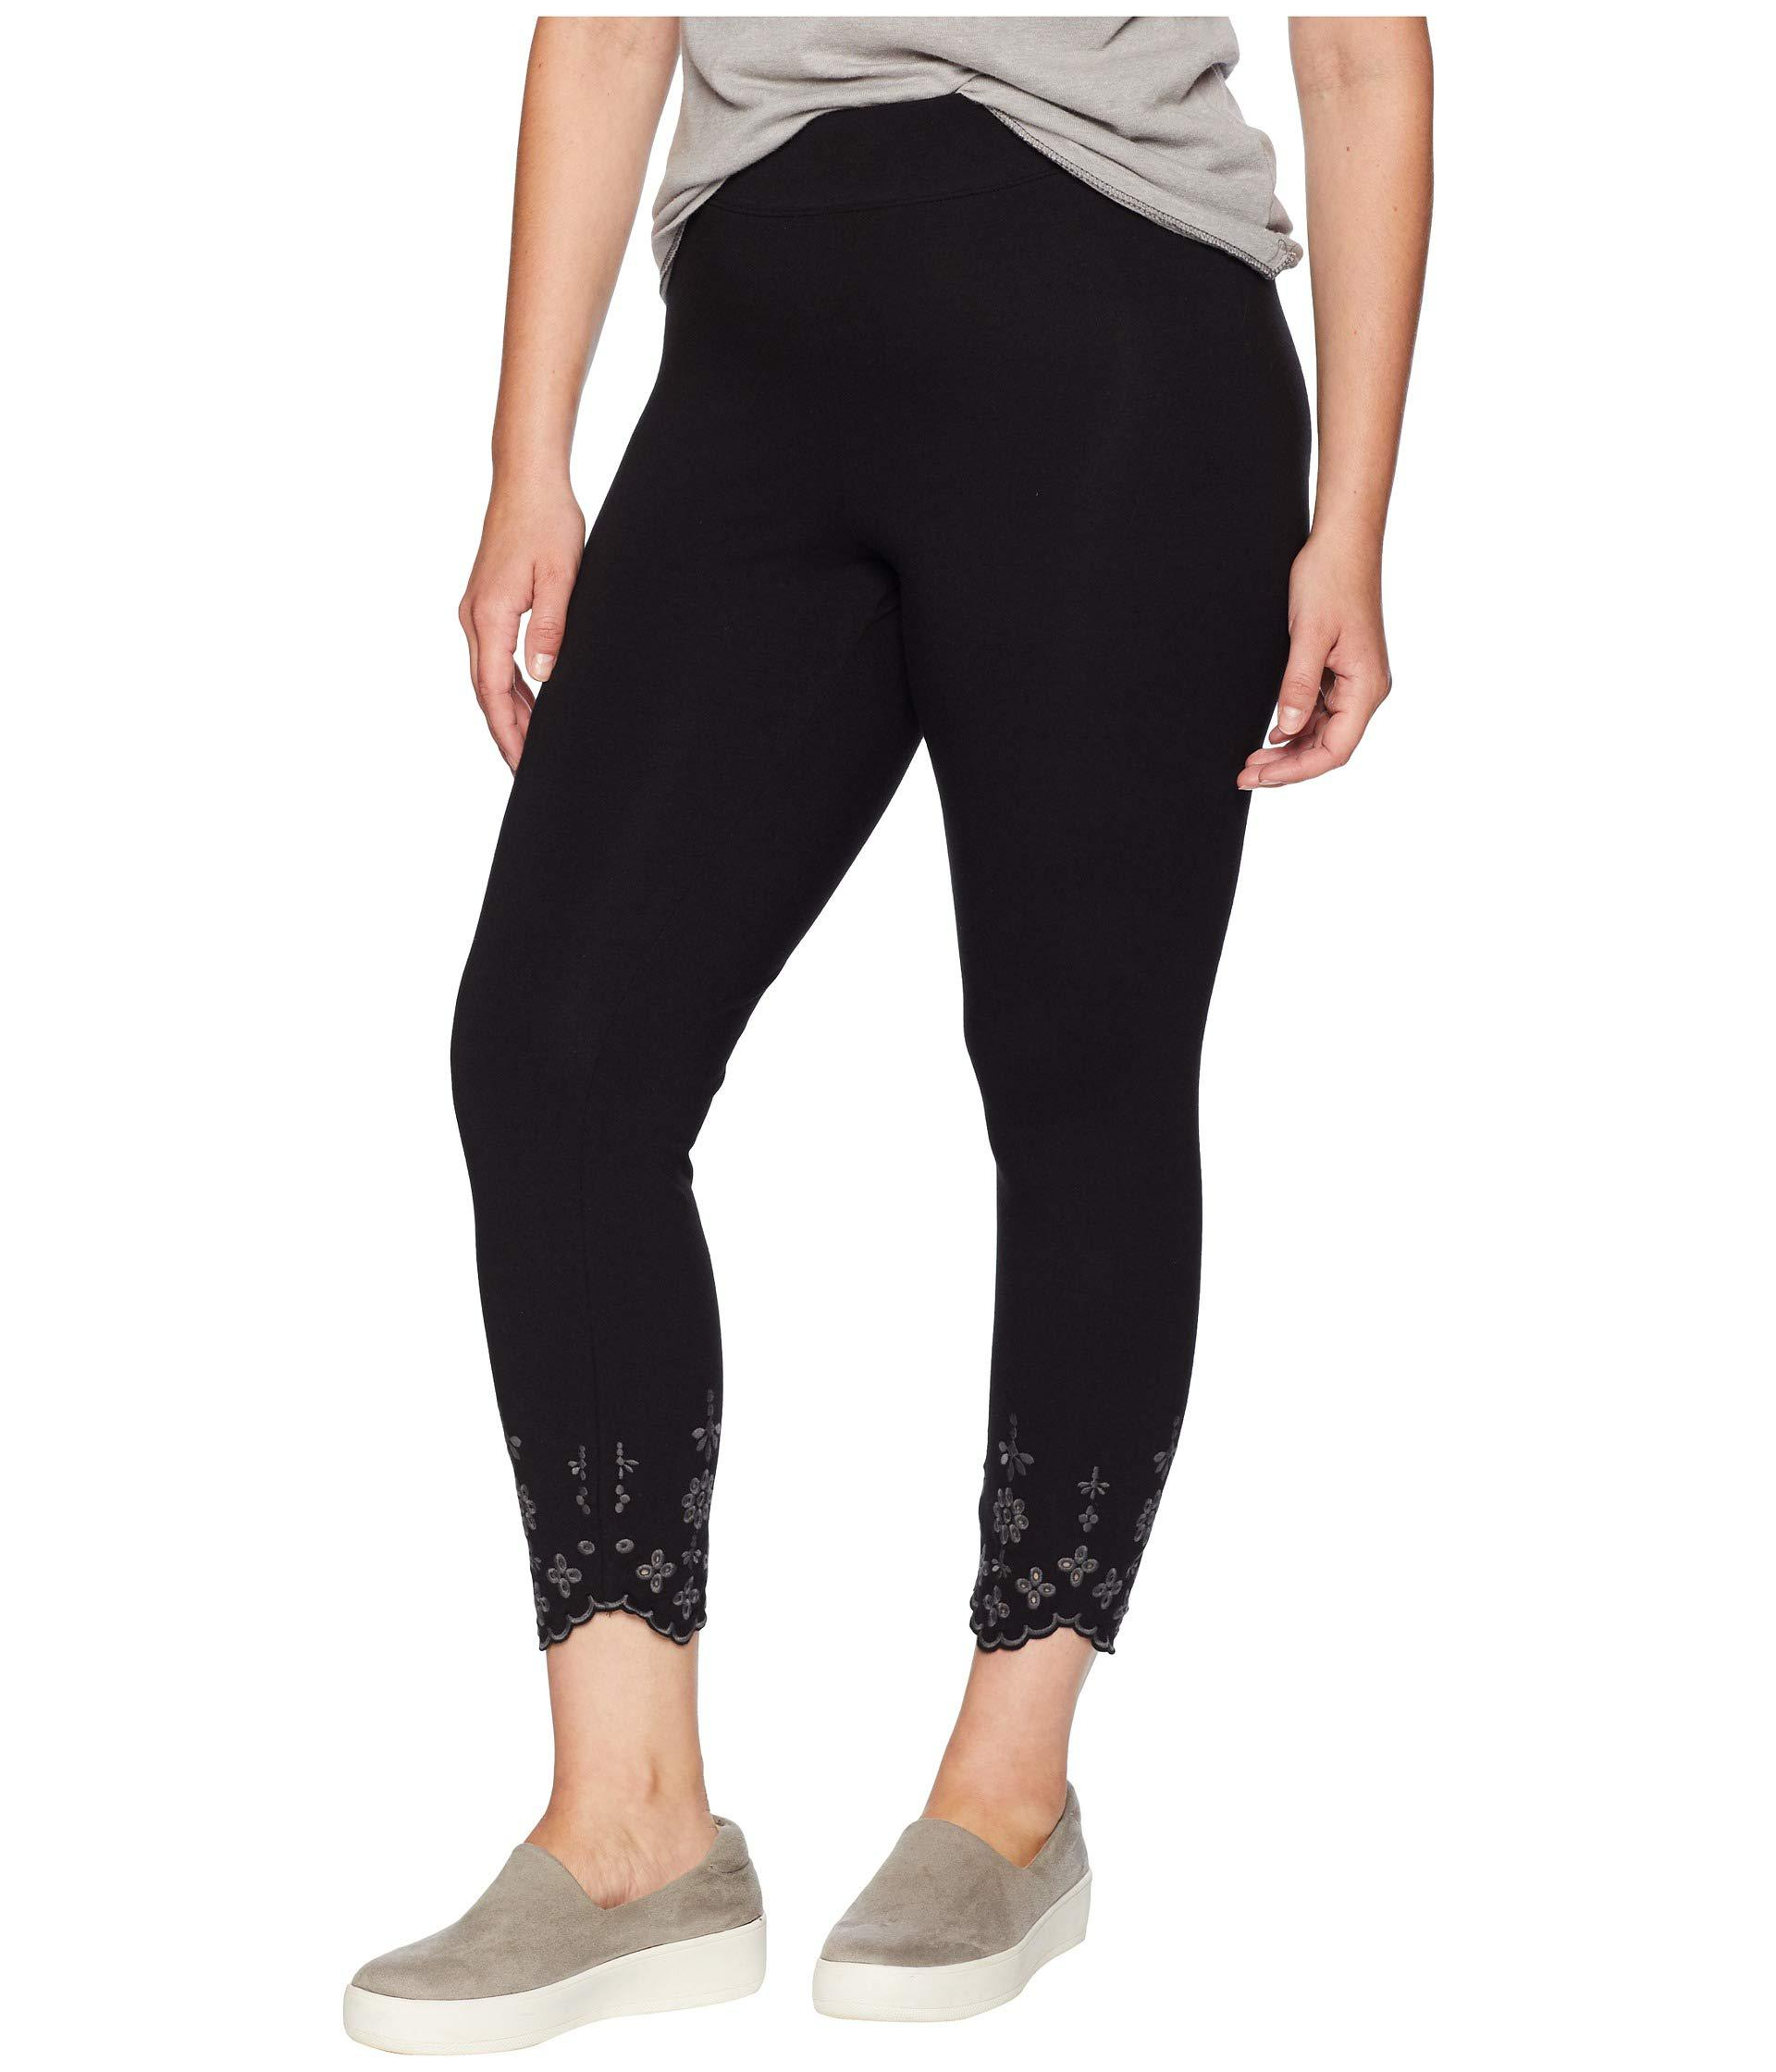 1a59fb4453a Hue - Plus Size Embroidered Hem Cotton Skimmer Leggings (black) Women s  Casual Pants -. View fullscreen